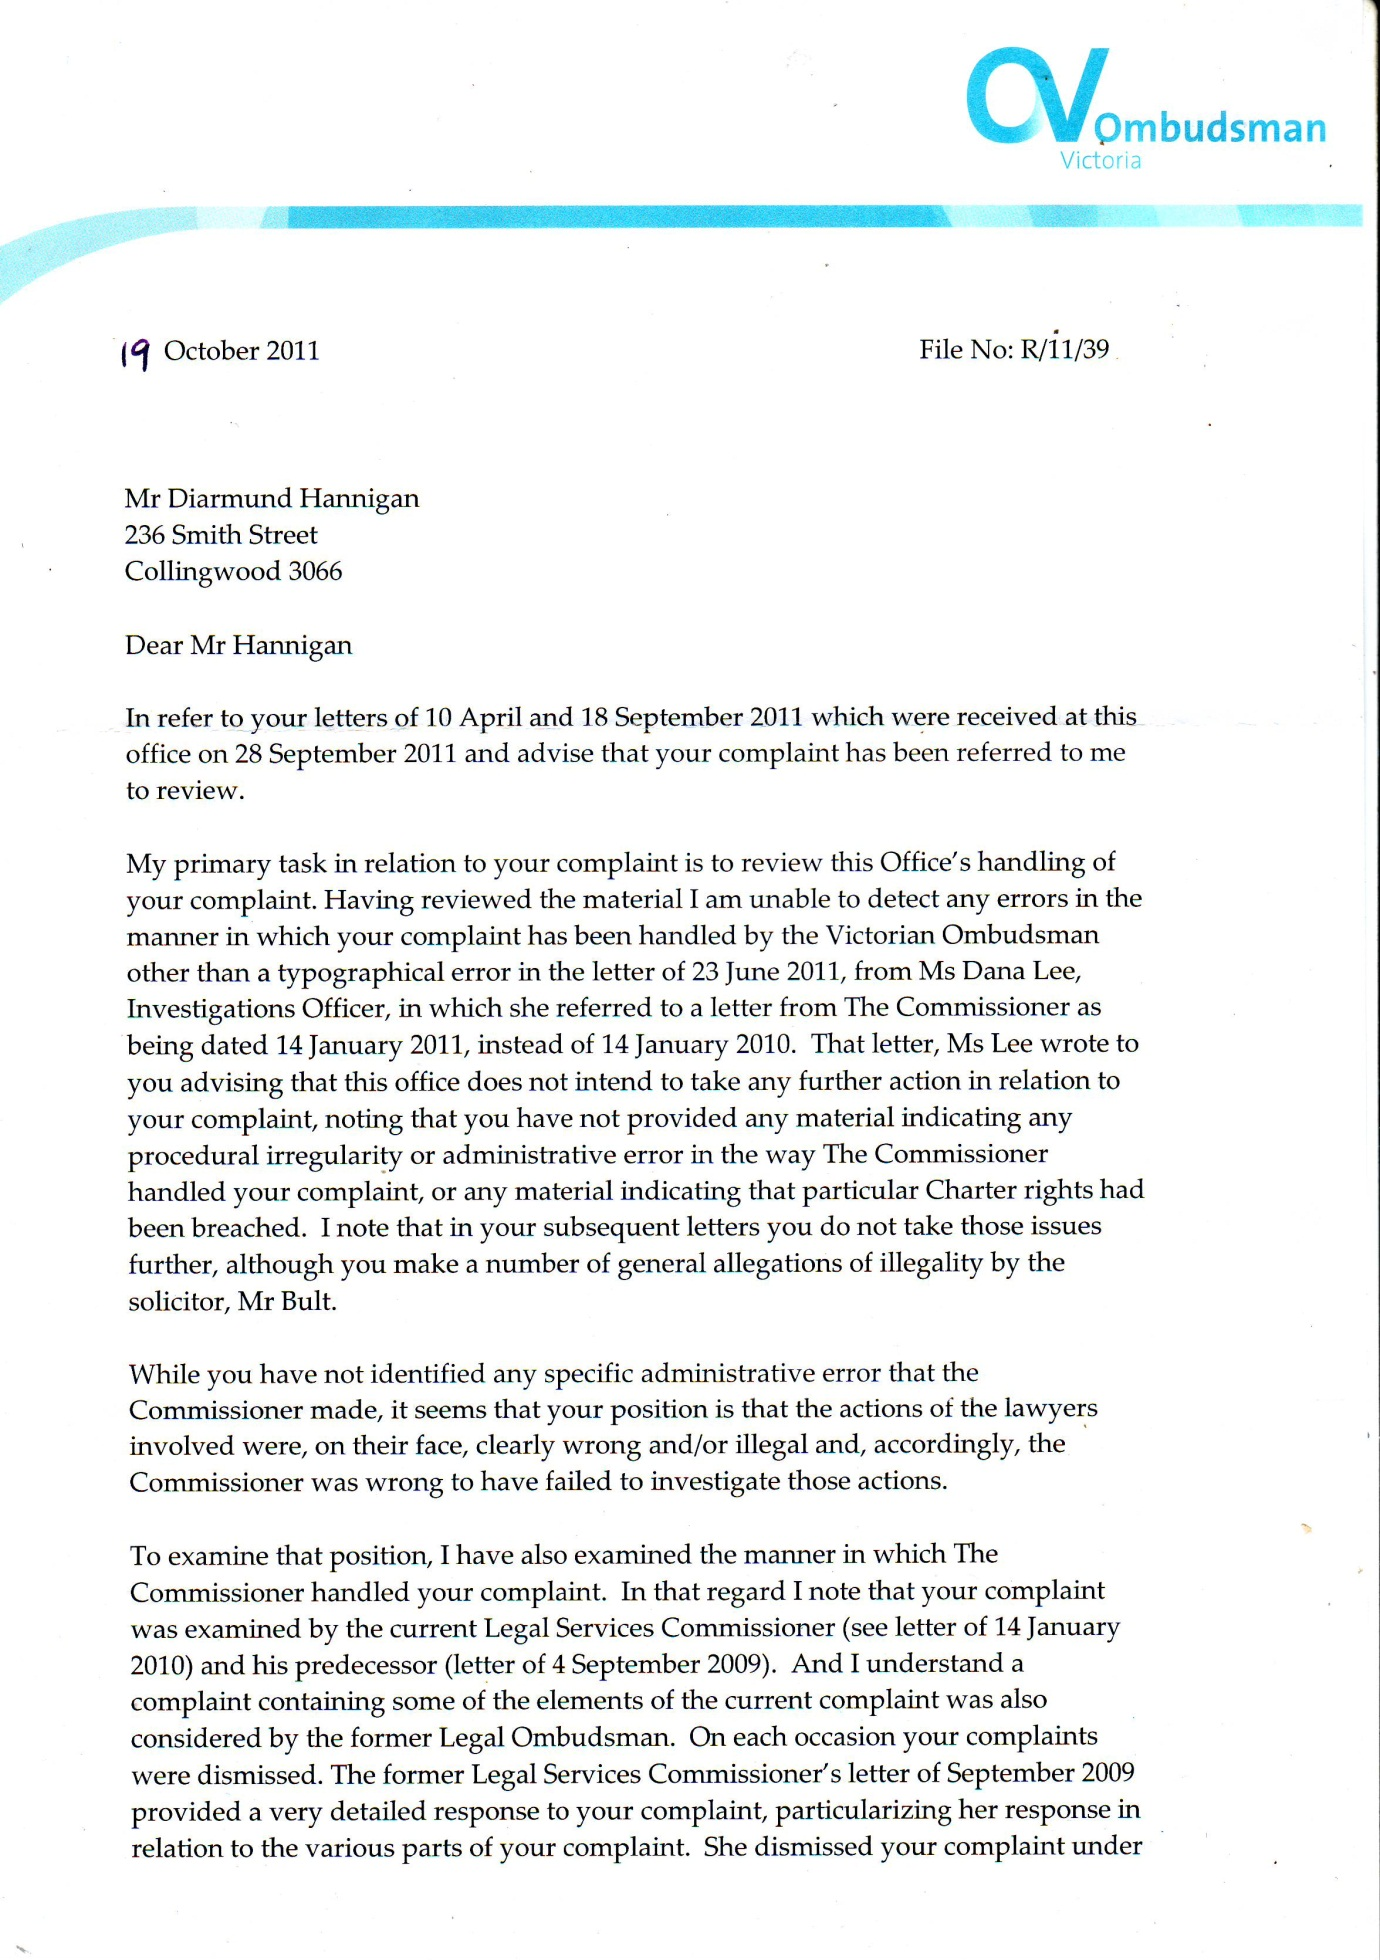 ombudsman reply October 2011 001